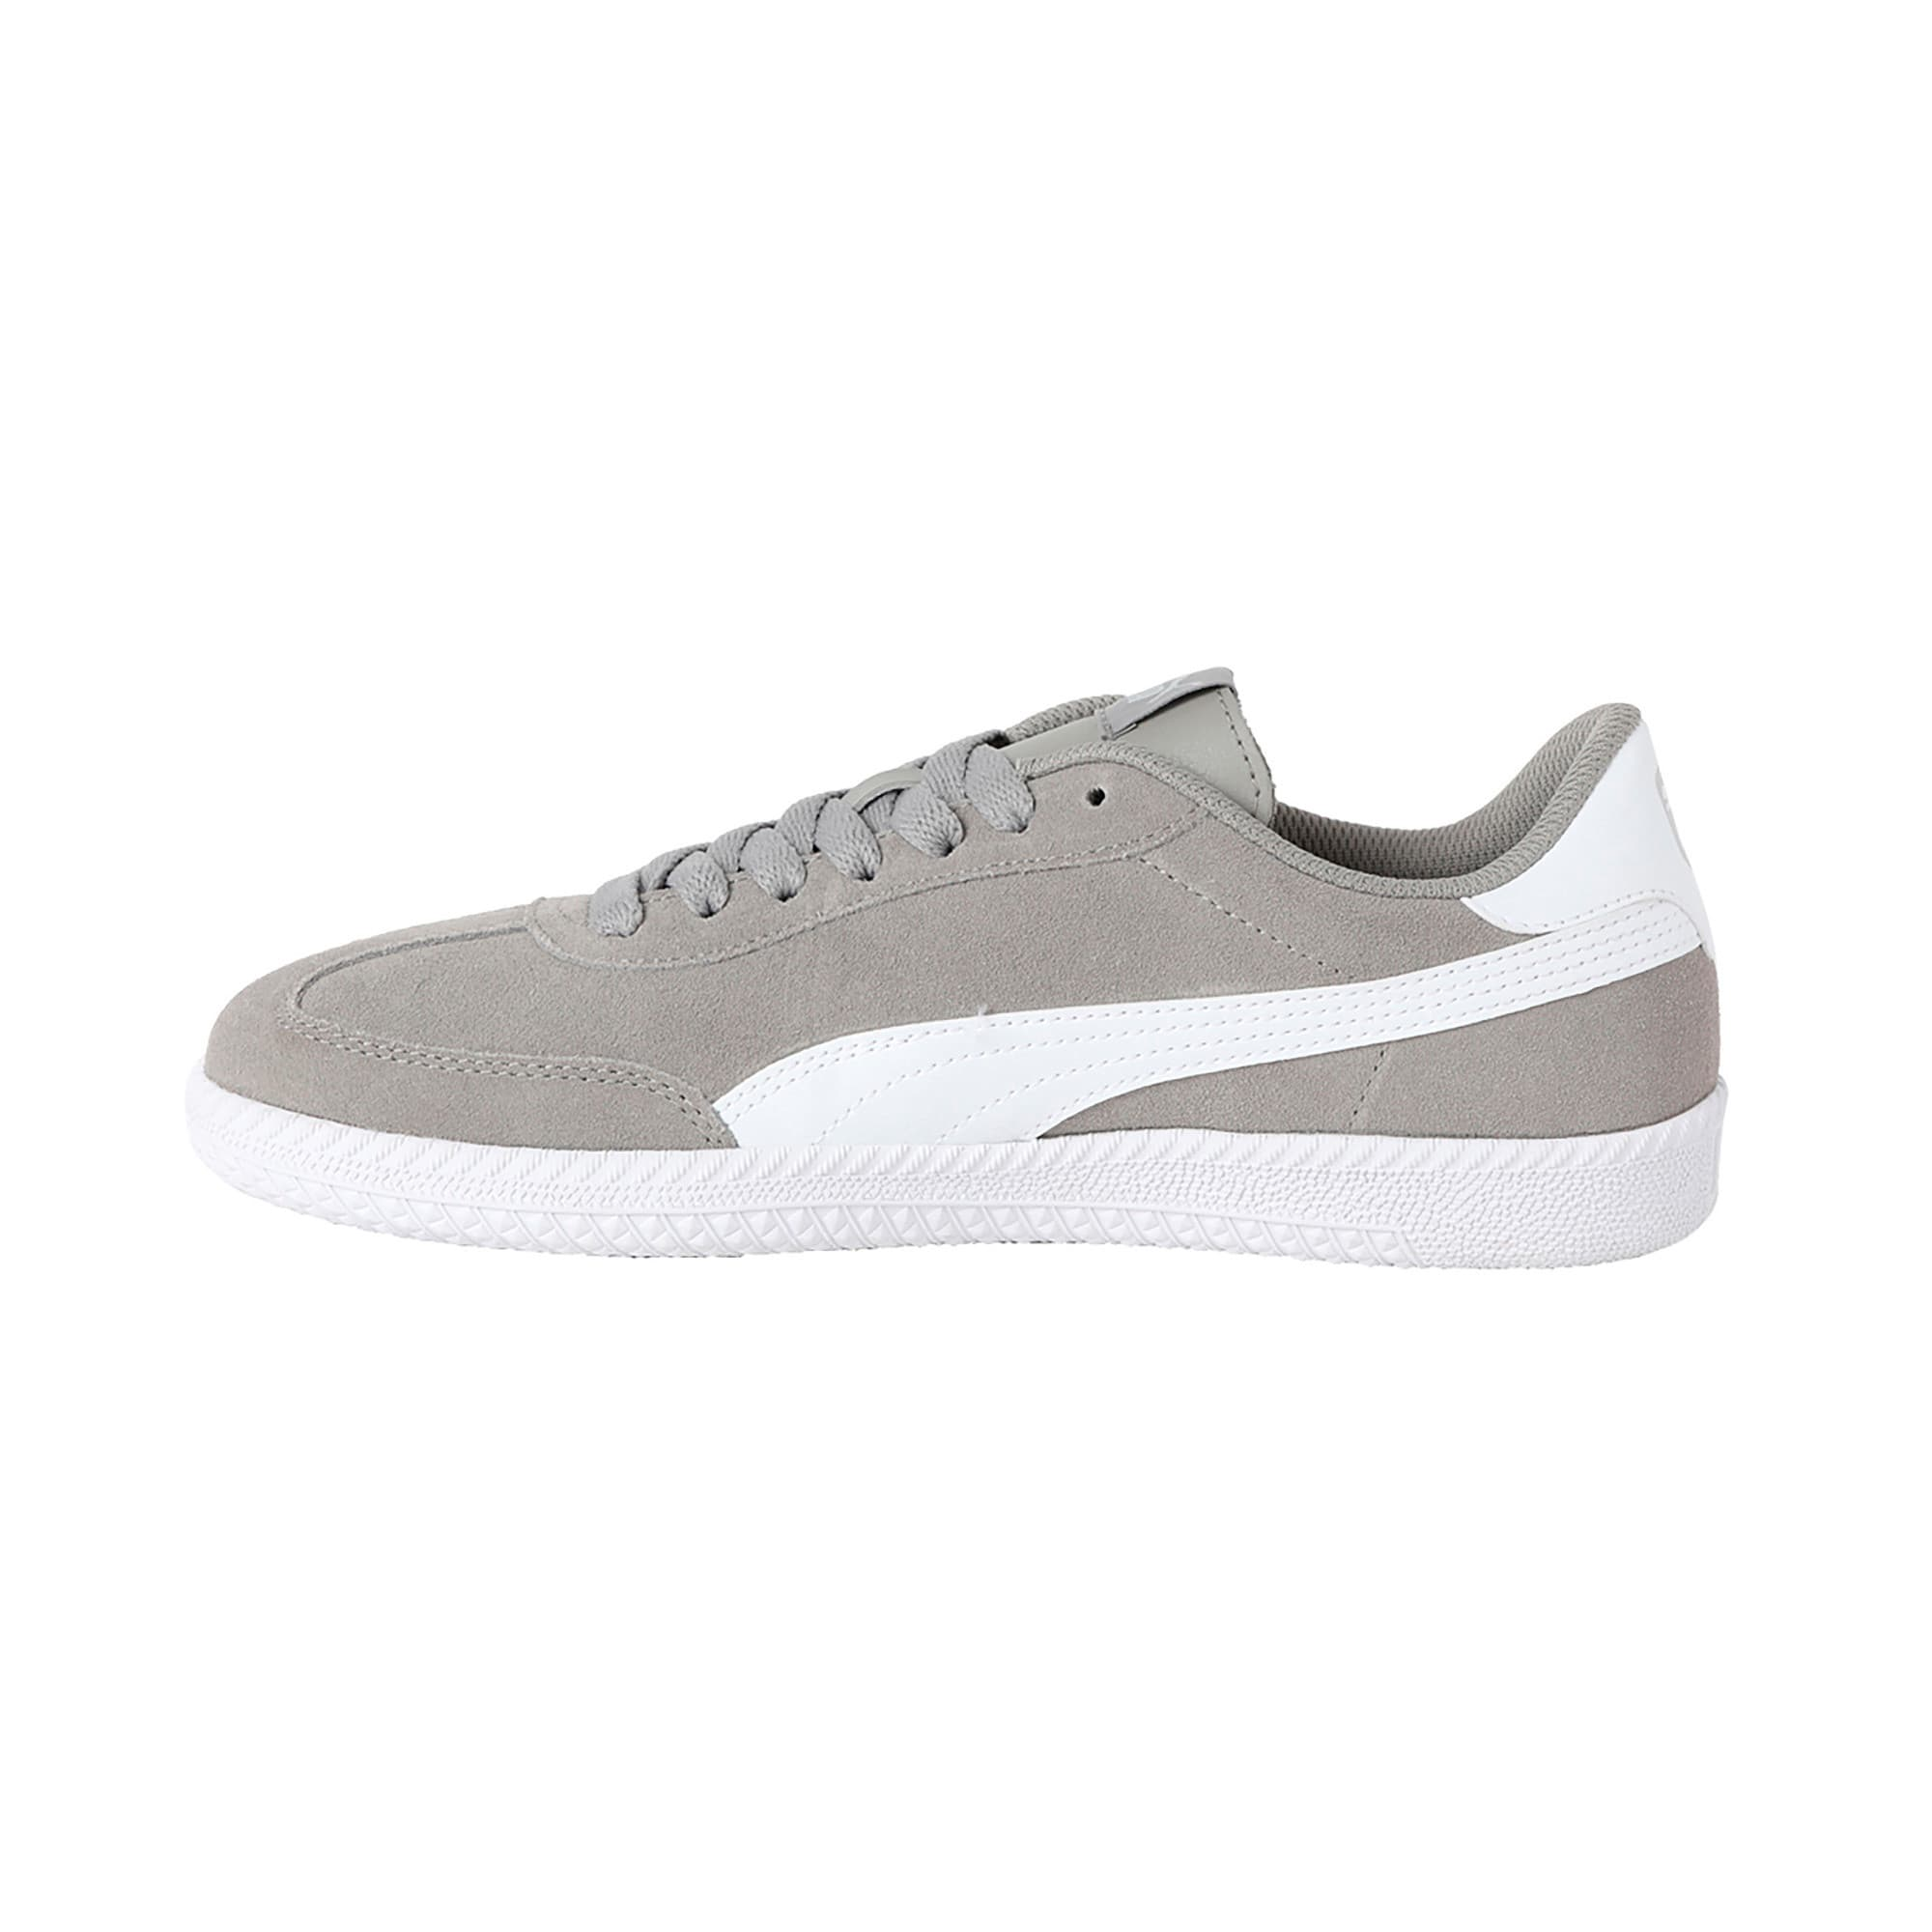 Thumbnail 1 of Astro Cup Trainers, Elephant Skin-Puma White, medium-IND